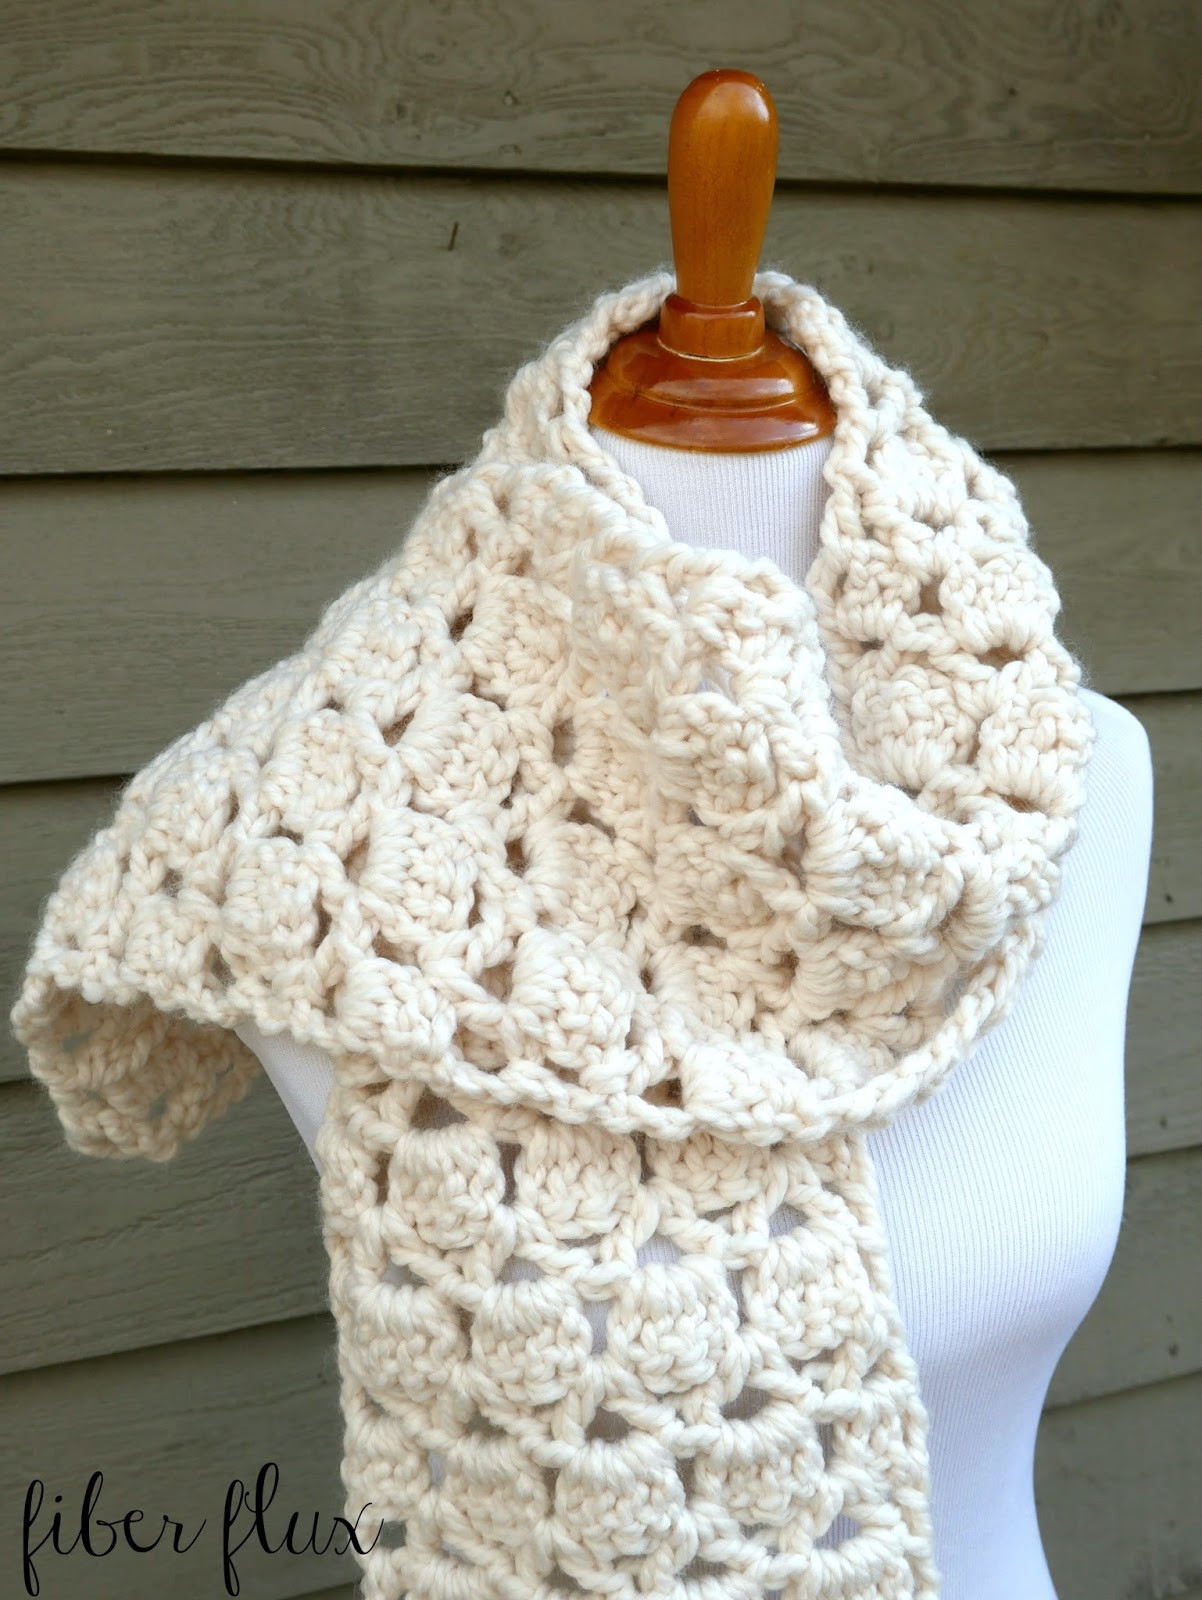 Fresh Bulky Yarn Crochet Patterns Scarf Free Crochet Patterns for Bulky Yarn Of Beautiful 46 Photos Free Crochet Patterns for Bulky Yarn